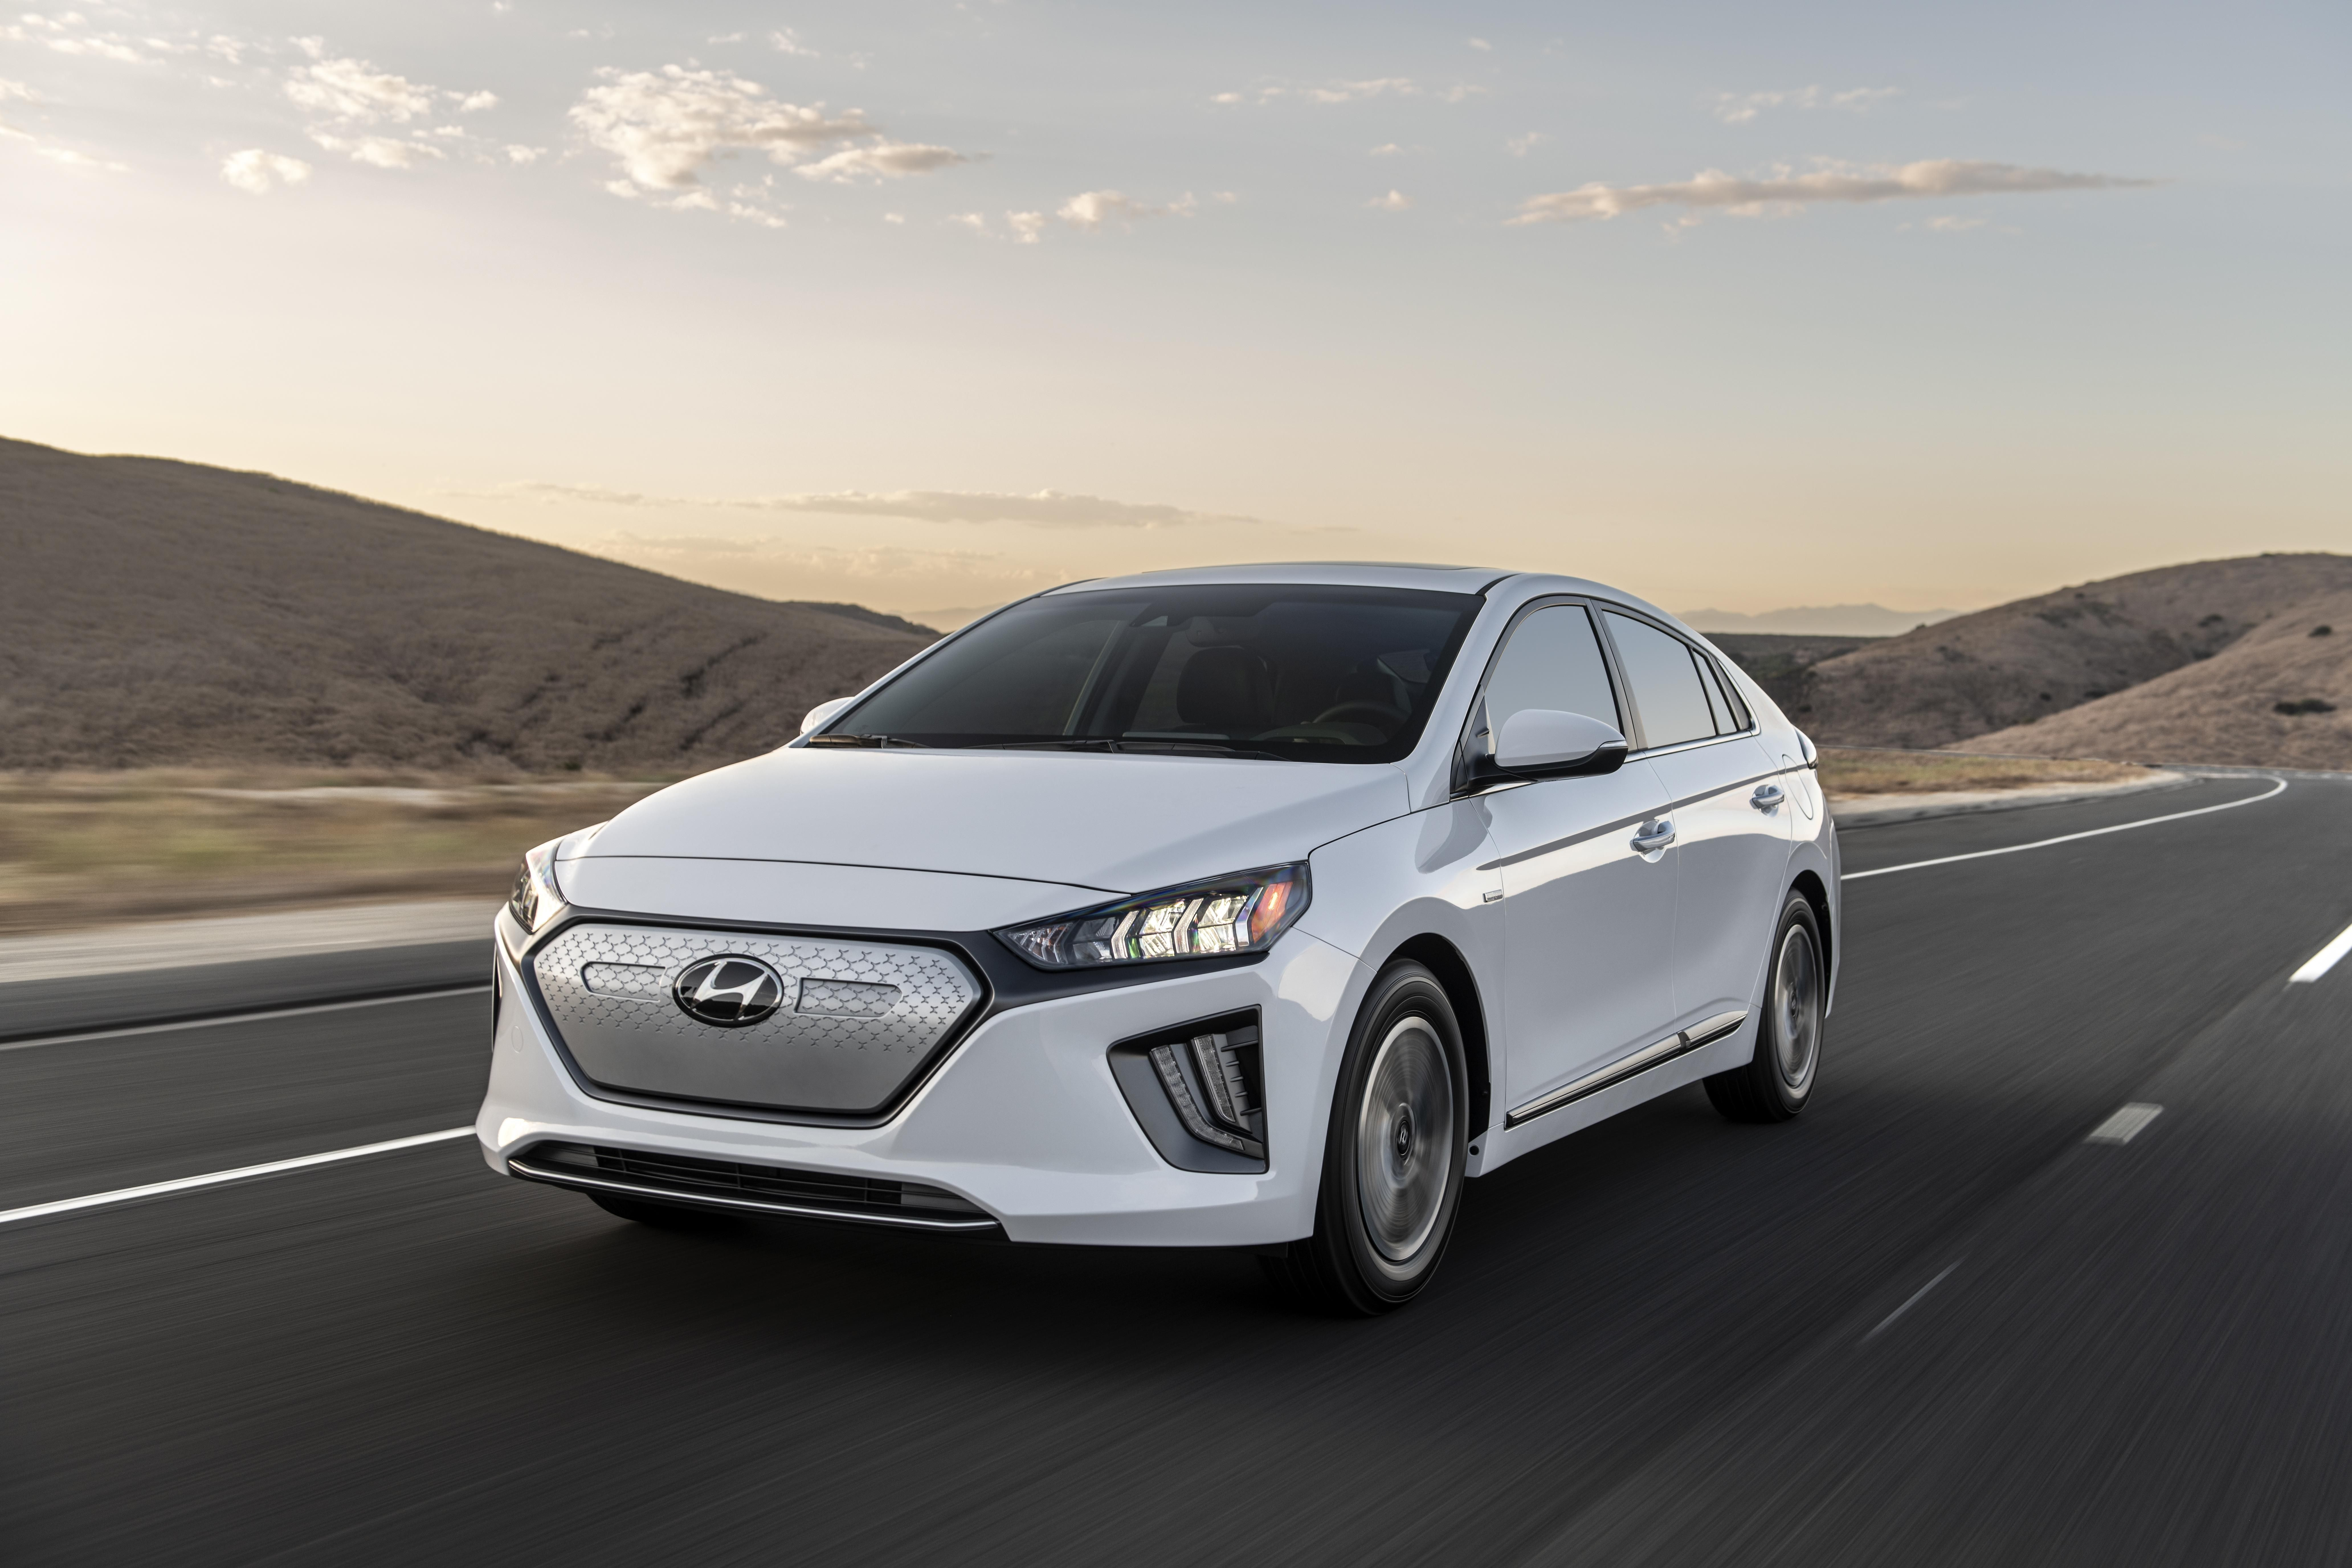 2020 Hyundai Ioniq Review, Pricing, And Specs